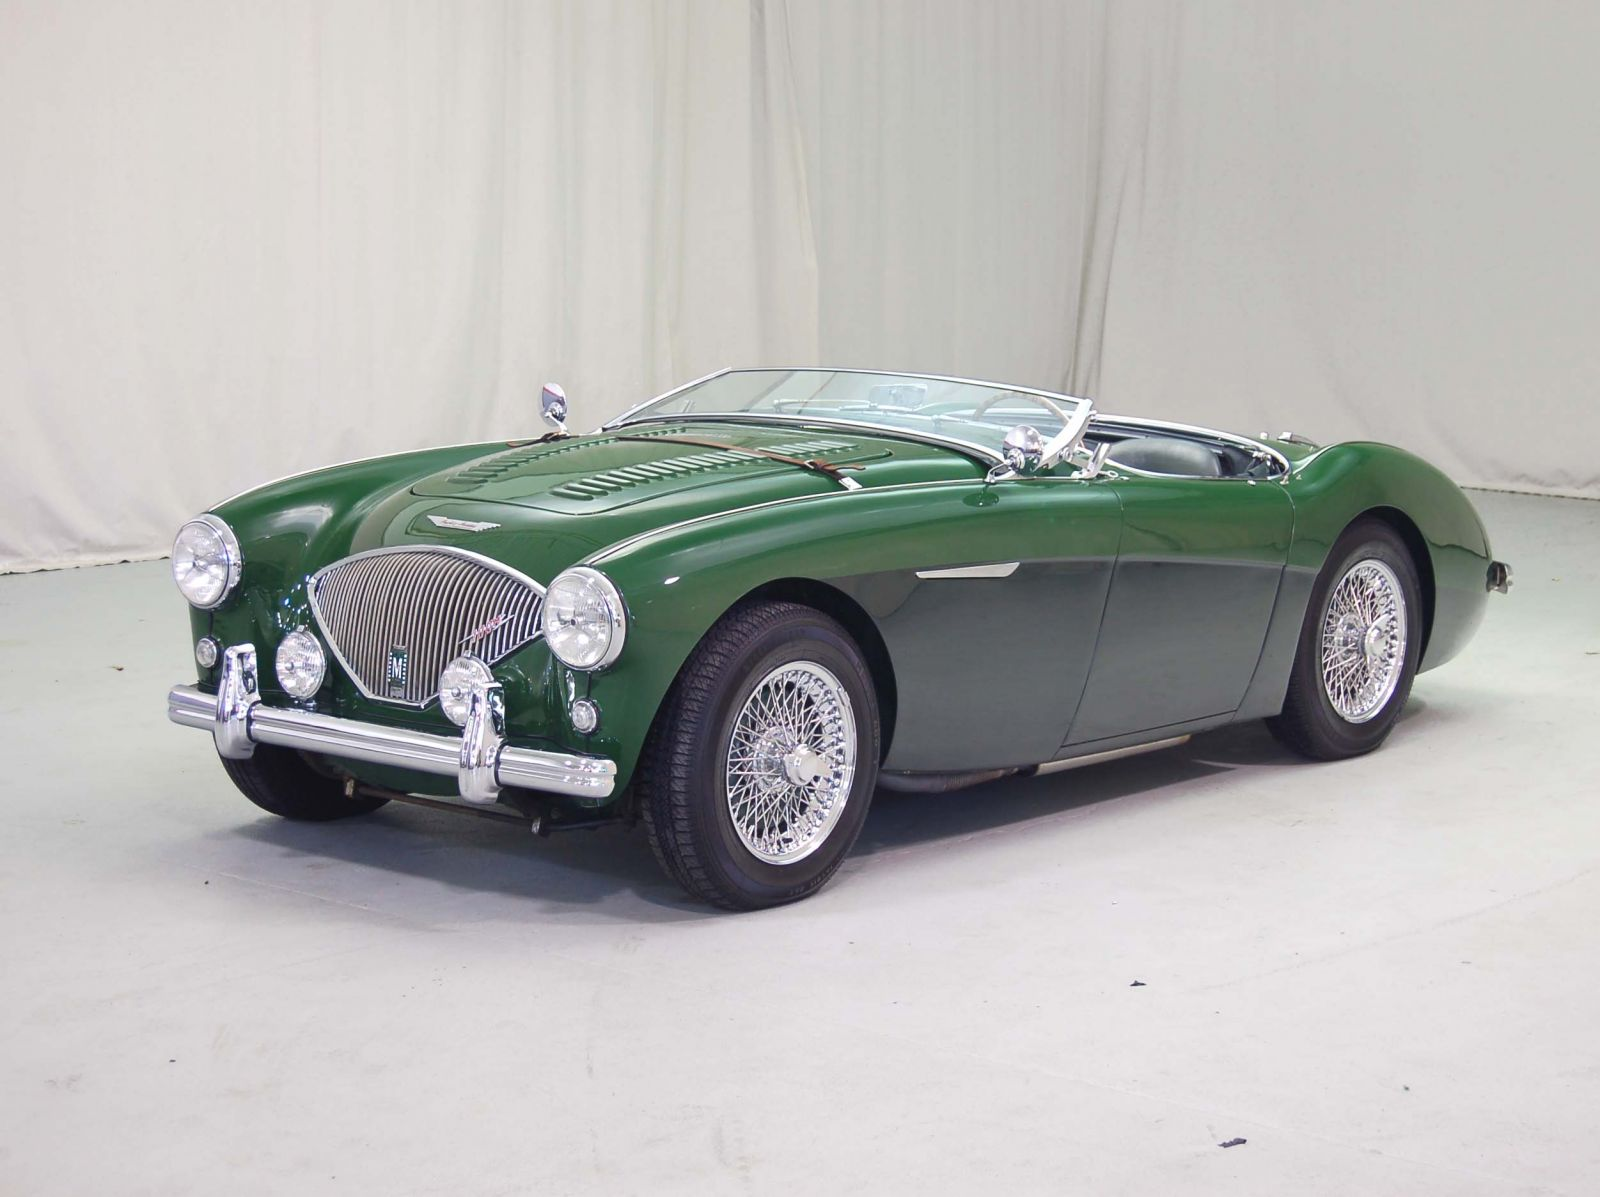 1956 Austin Healey 100-4 Classic Car For Sale | Buy  1956 Austin Healey 100-4 at Hyman LTD